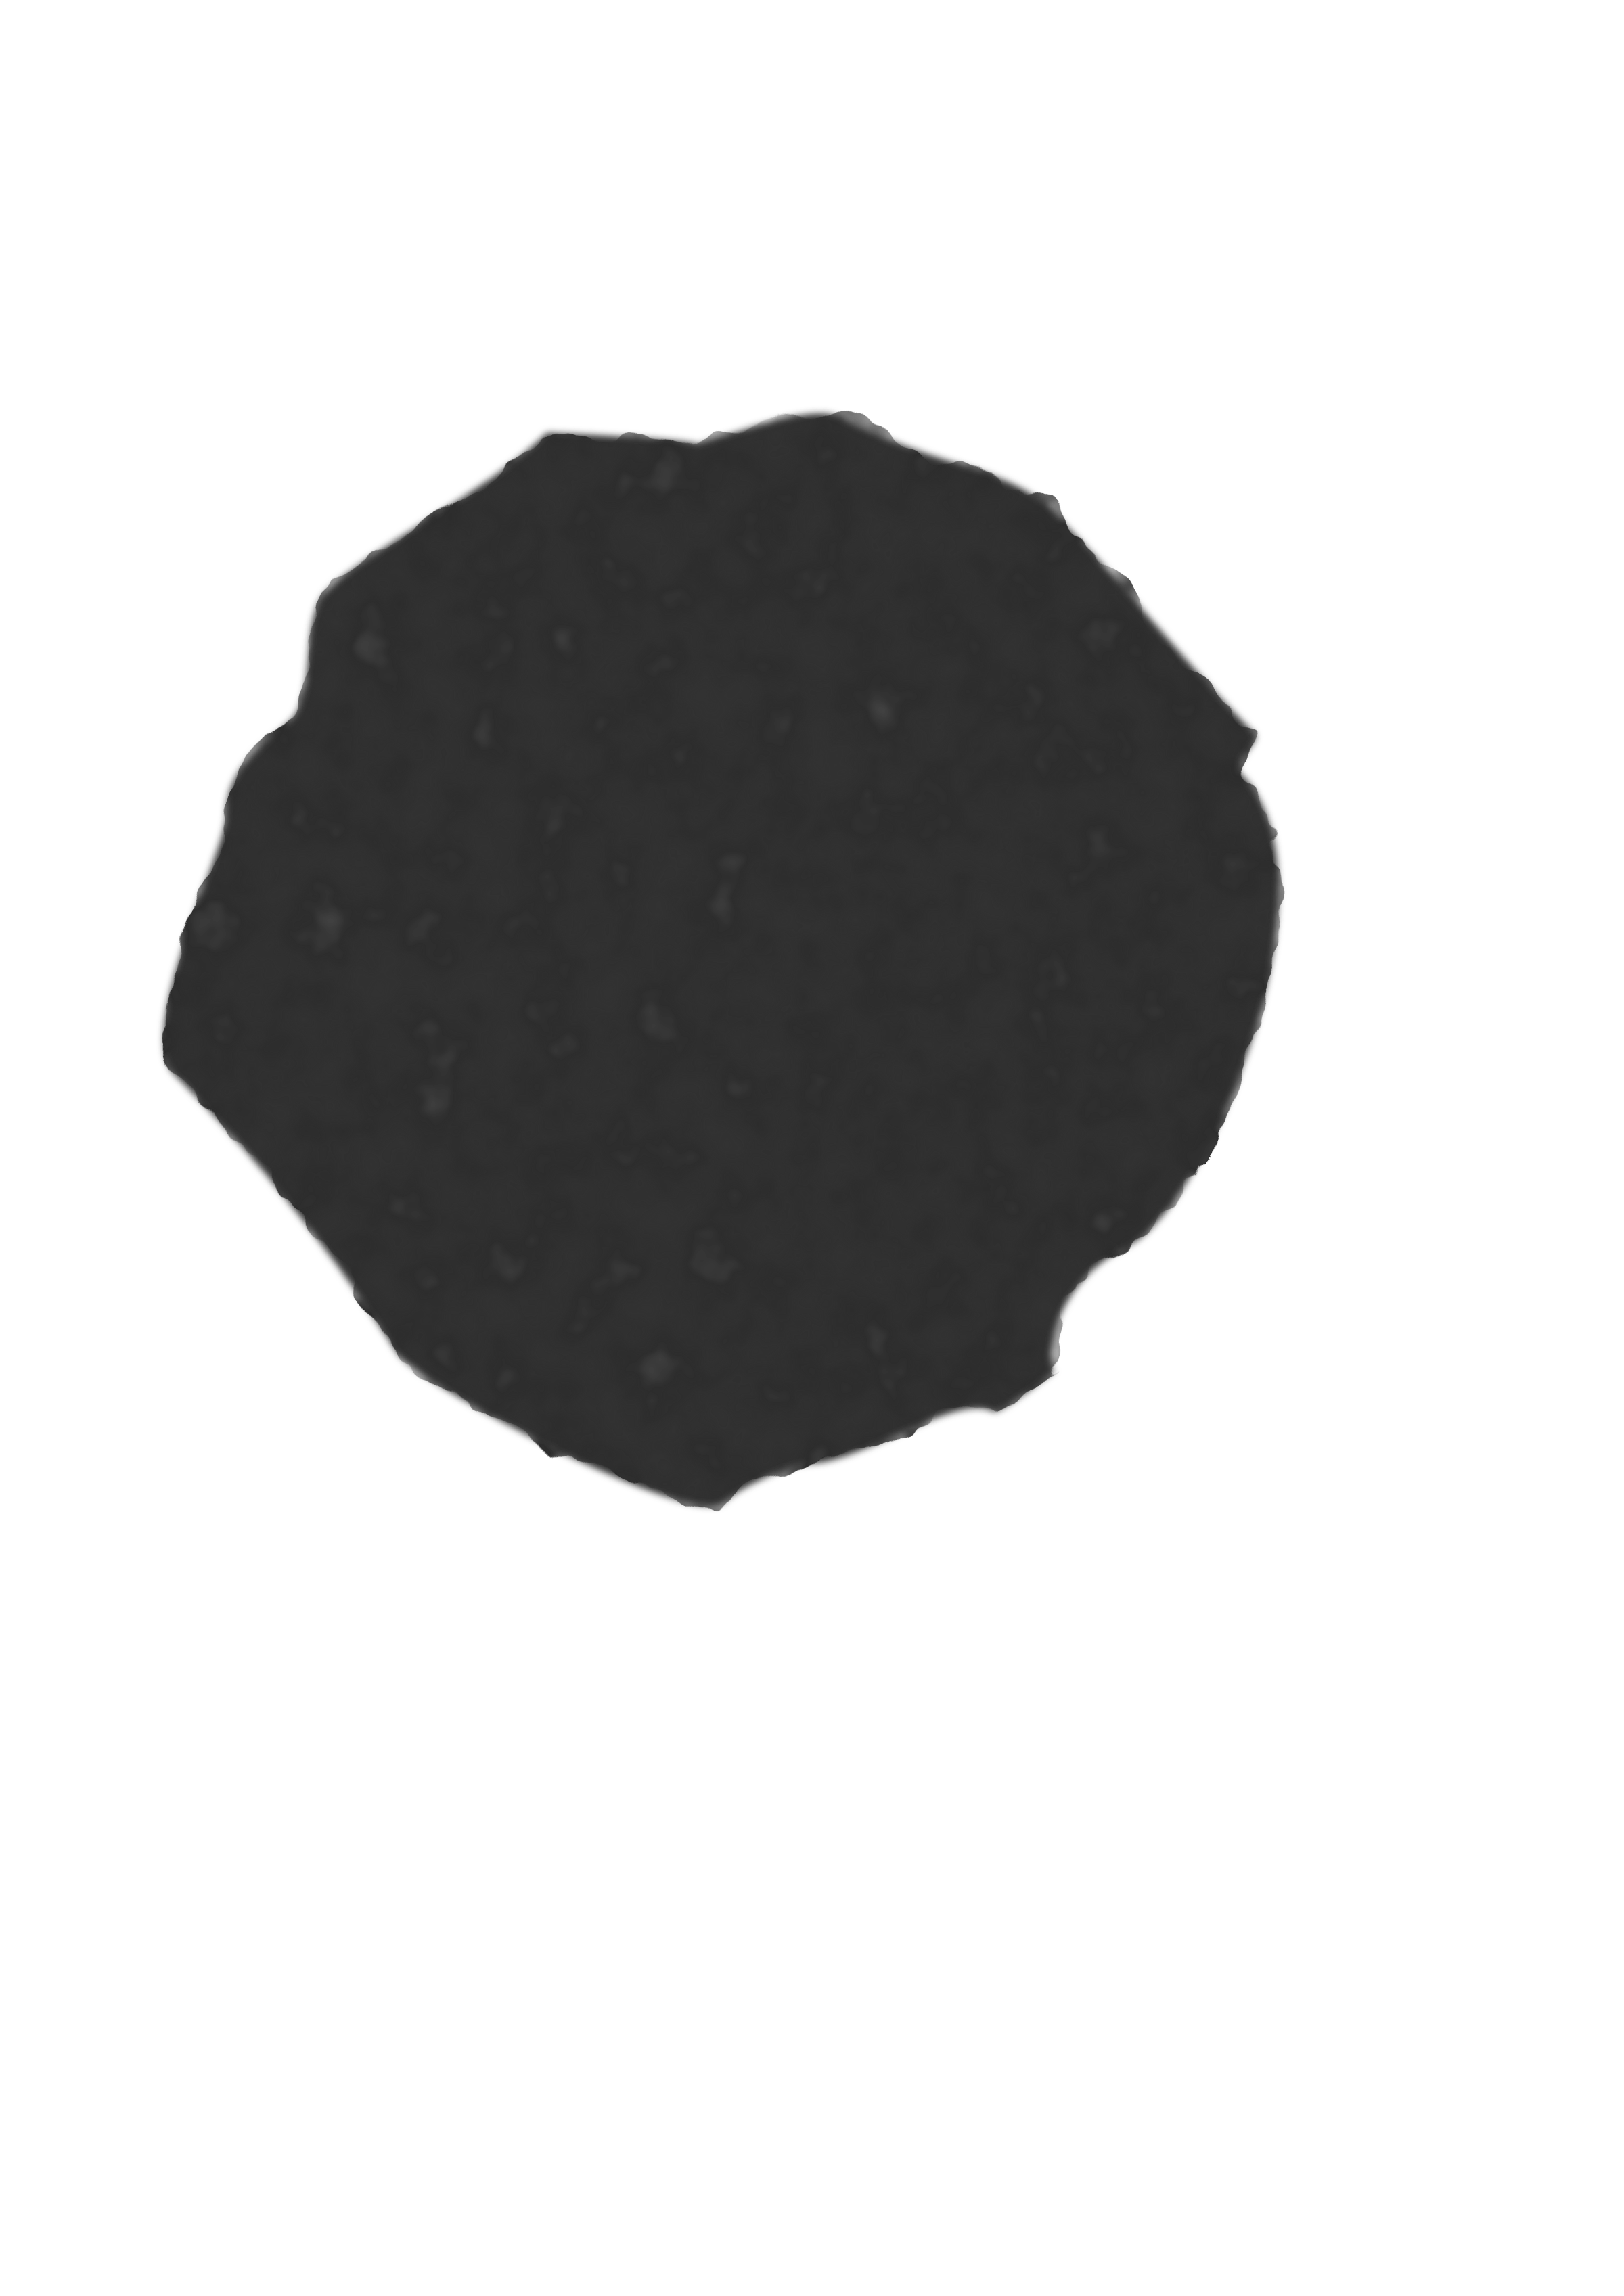 Asteroid clipart Clipart (no remix shading) shading)